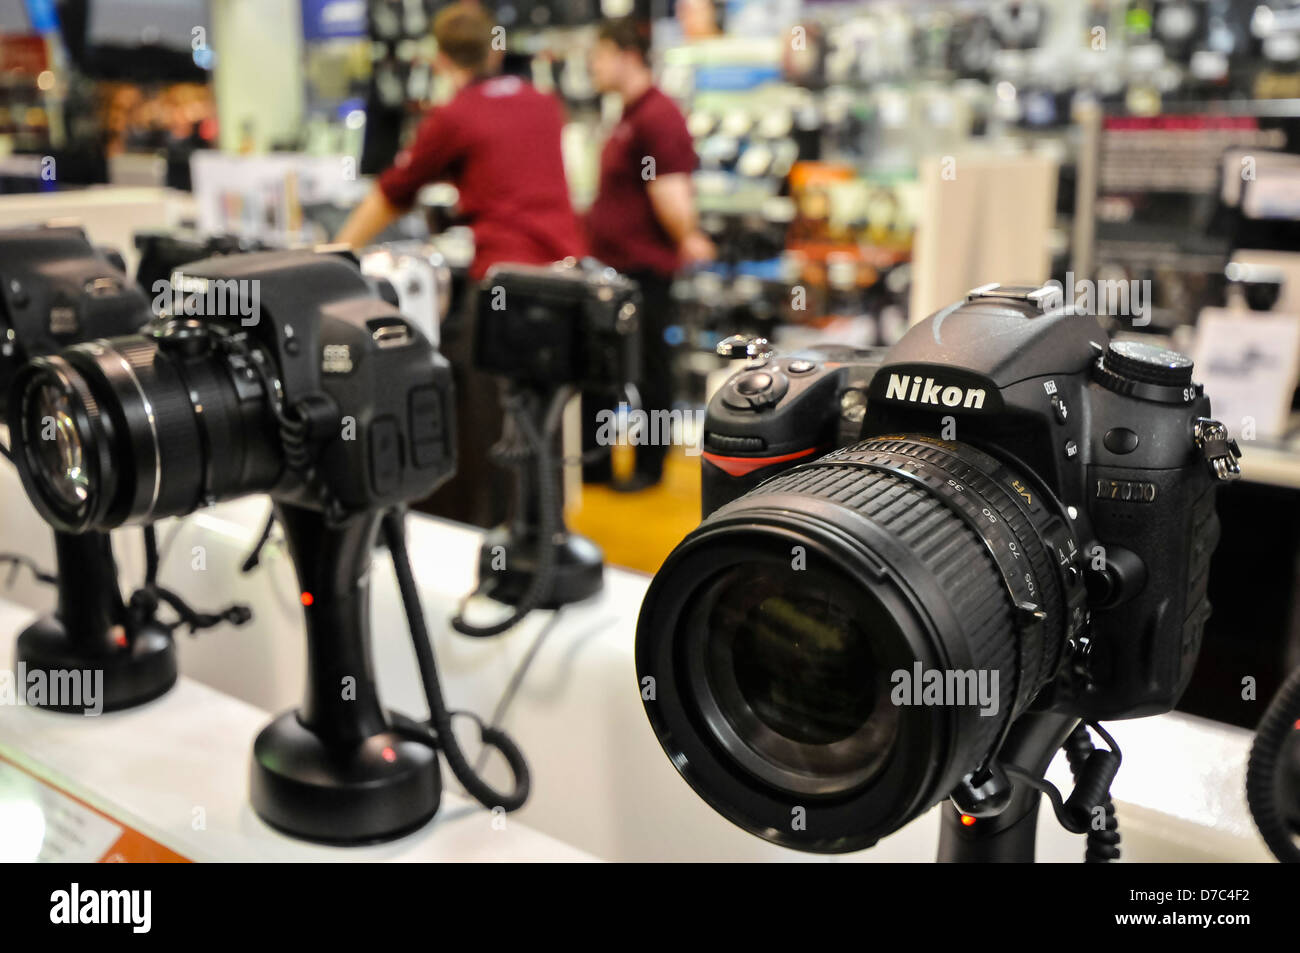 Cameras on sale in a Dixons Travel airport shop. - Stock Image